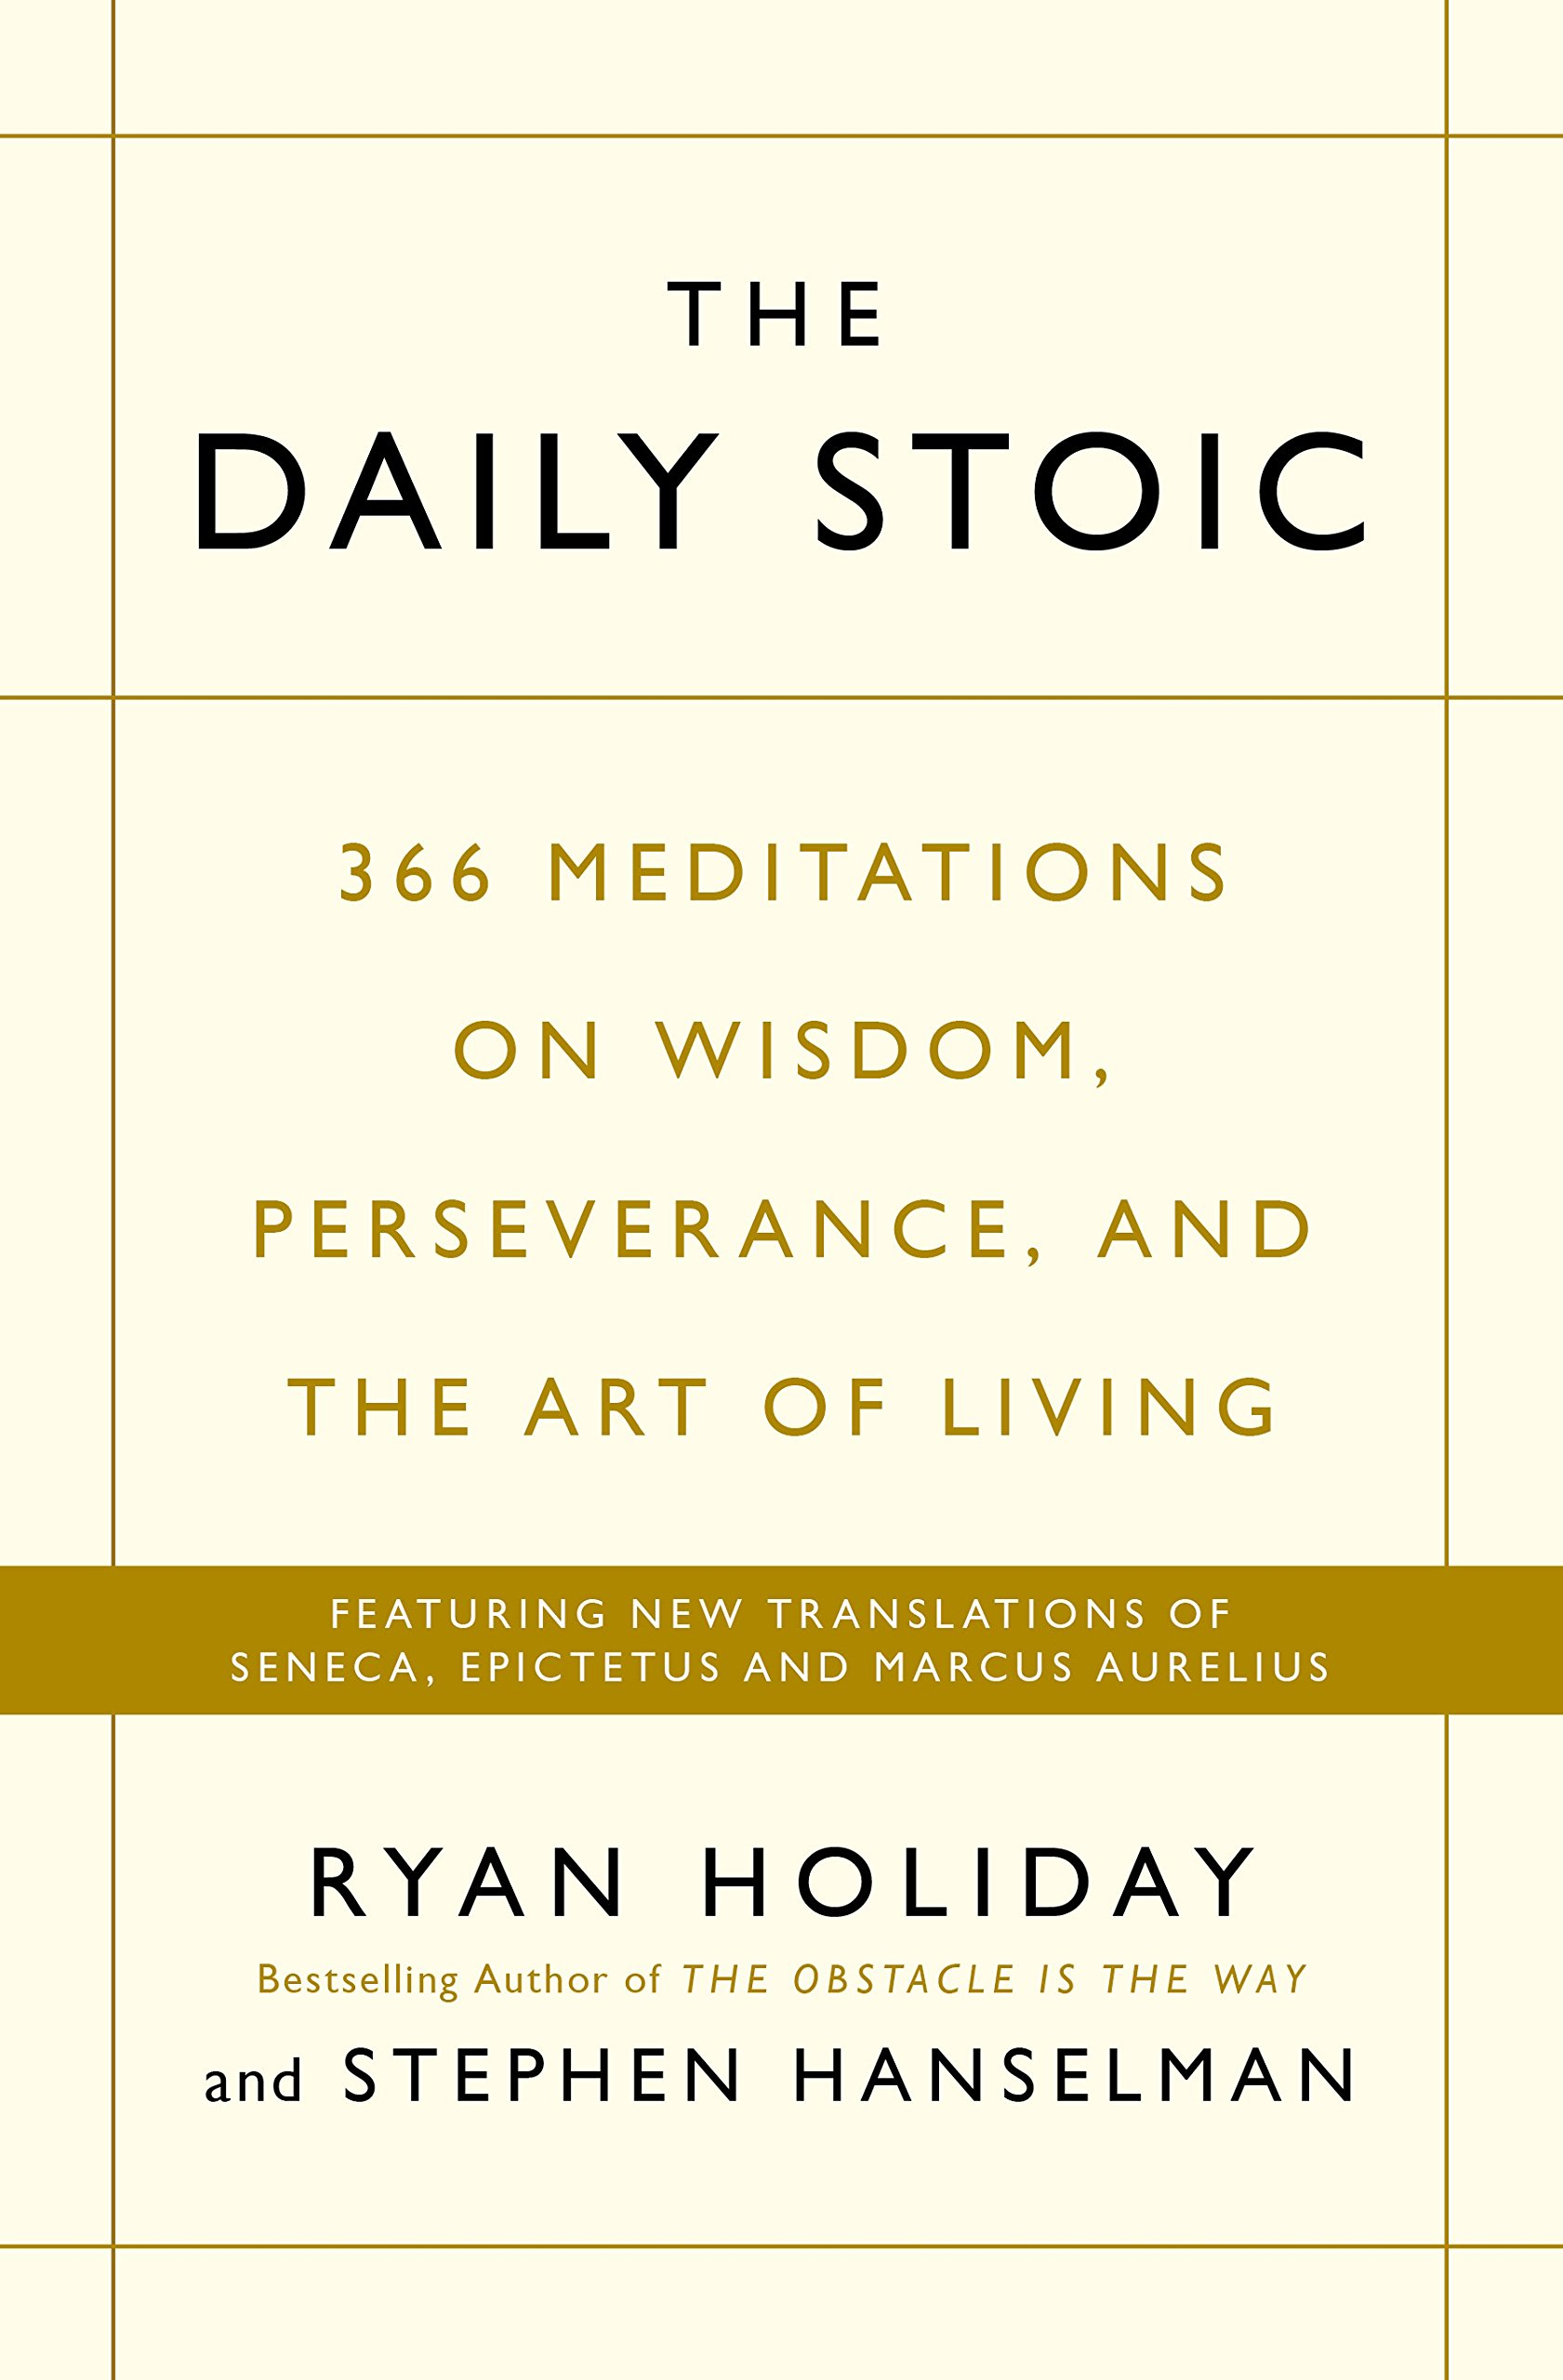 The Daily Stoic: 366 Meditations on Wisdom - (PB)